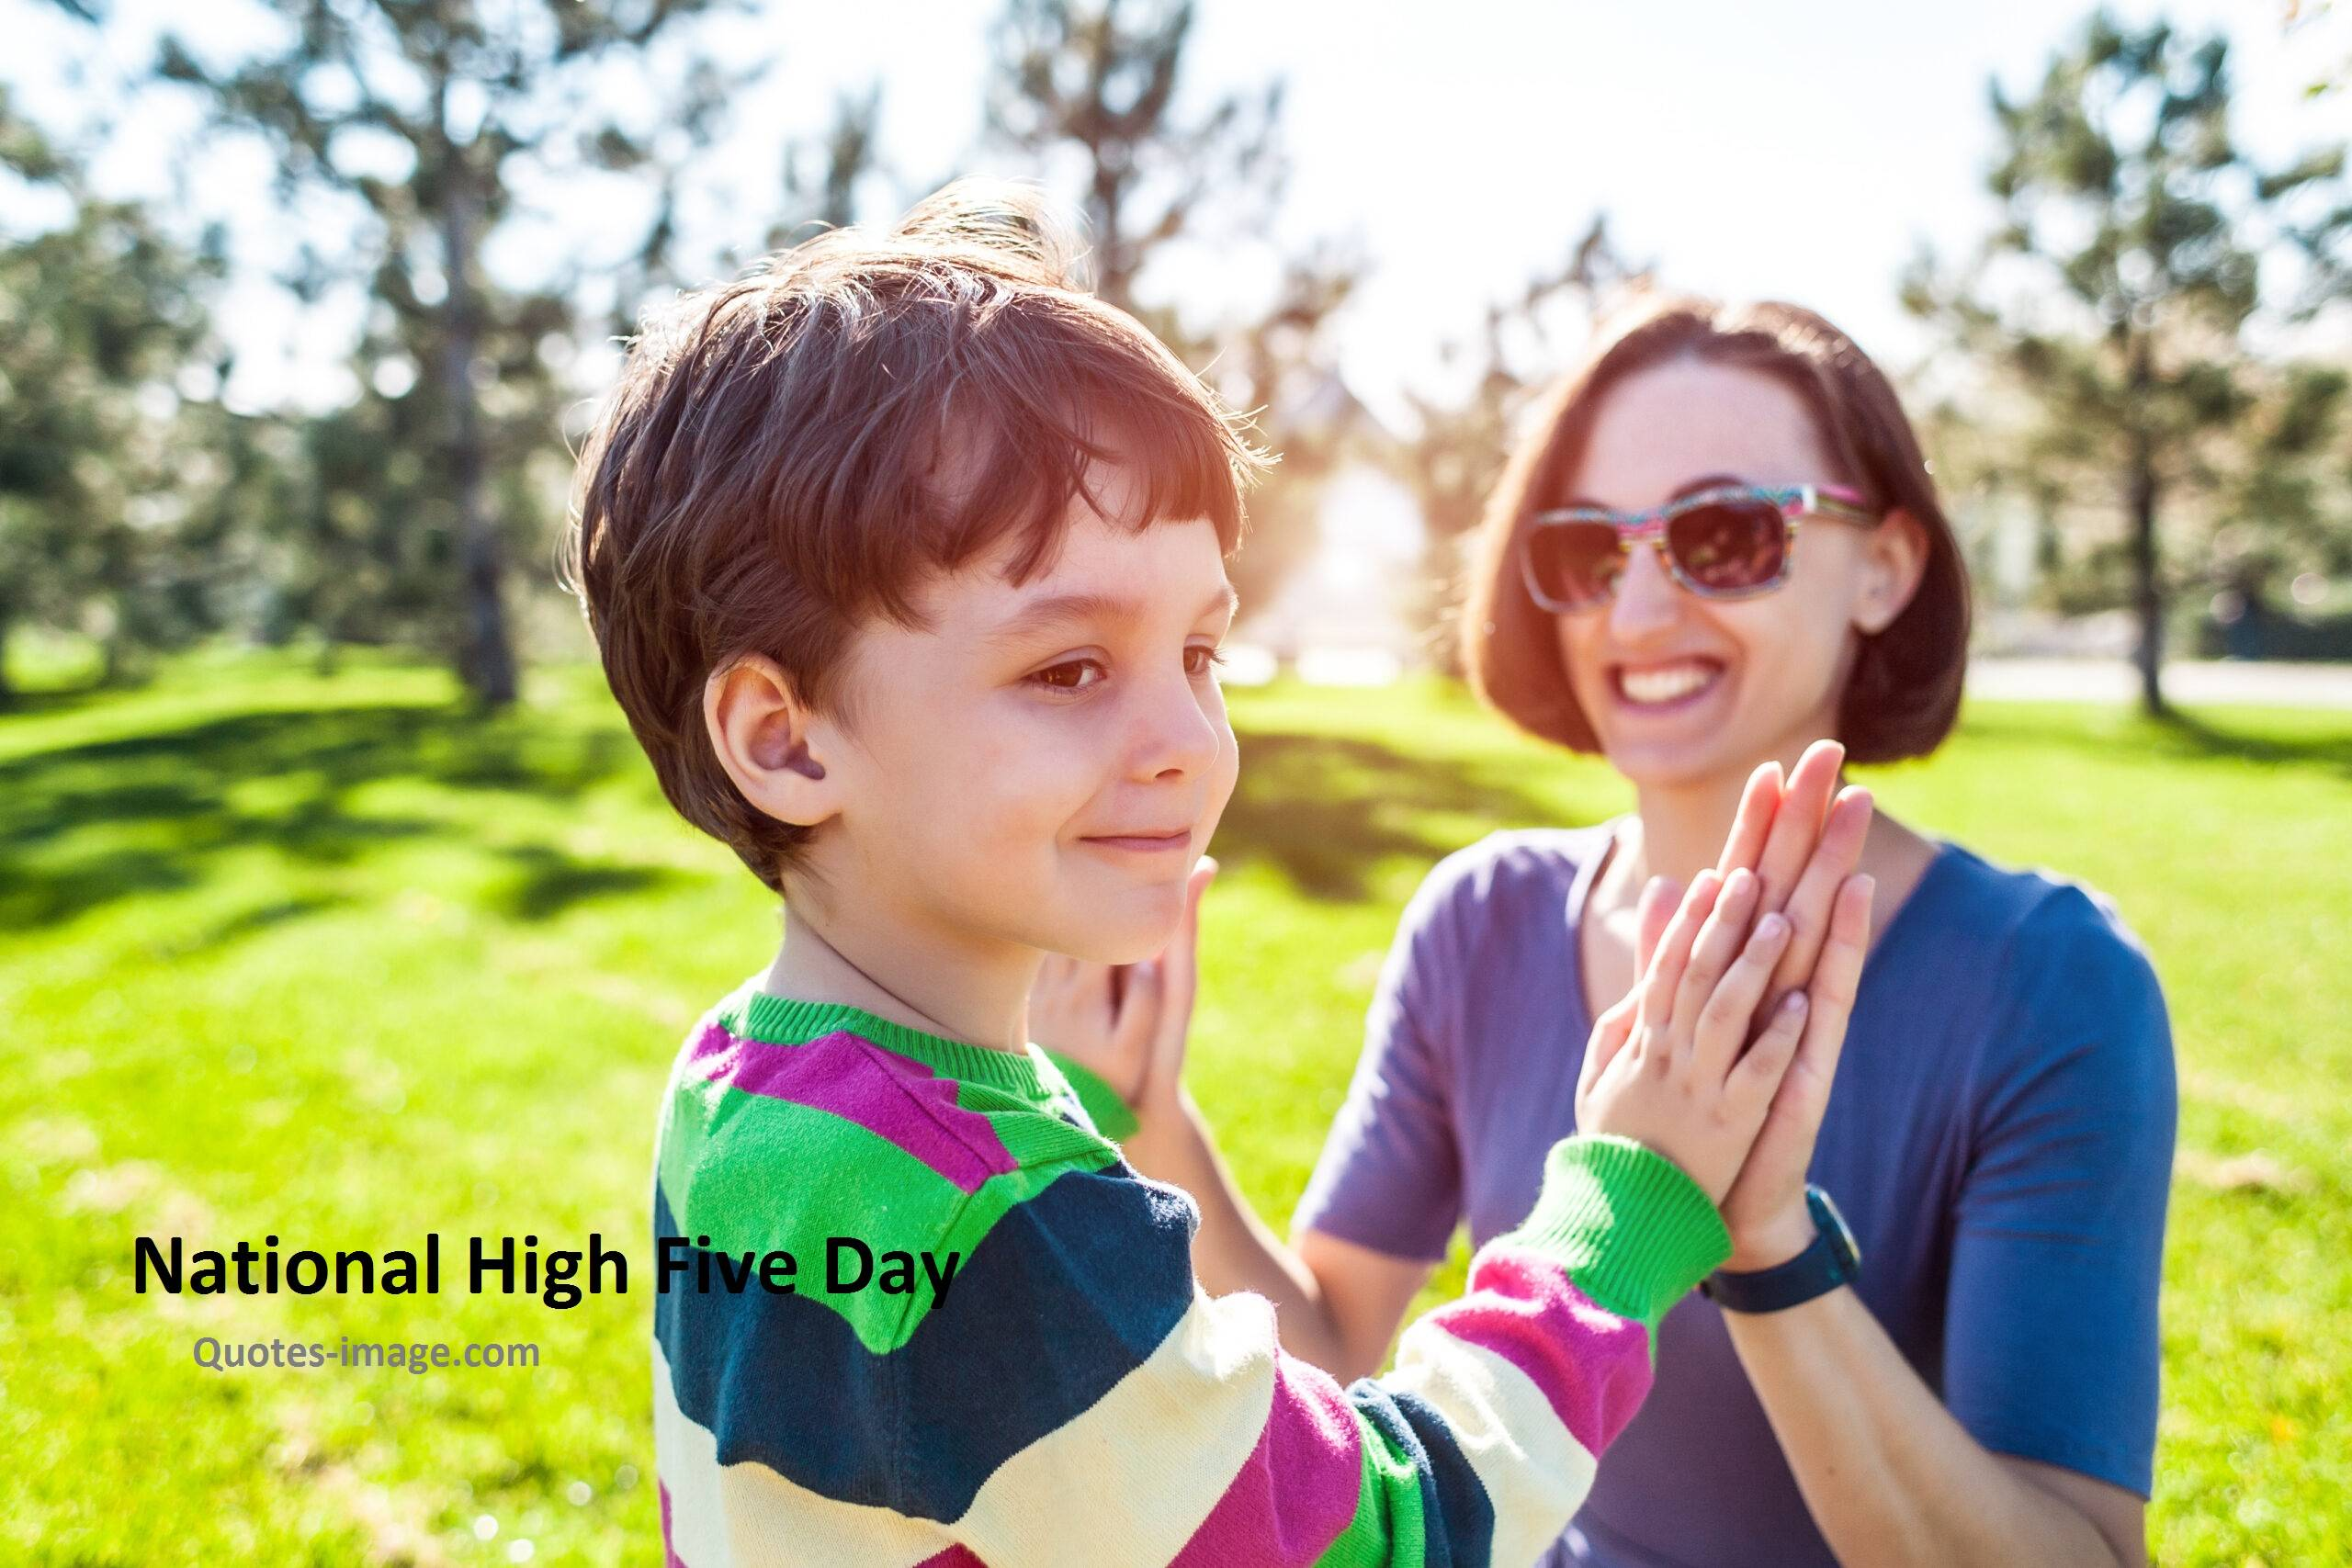 National High Five Day | Third Thursday in April